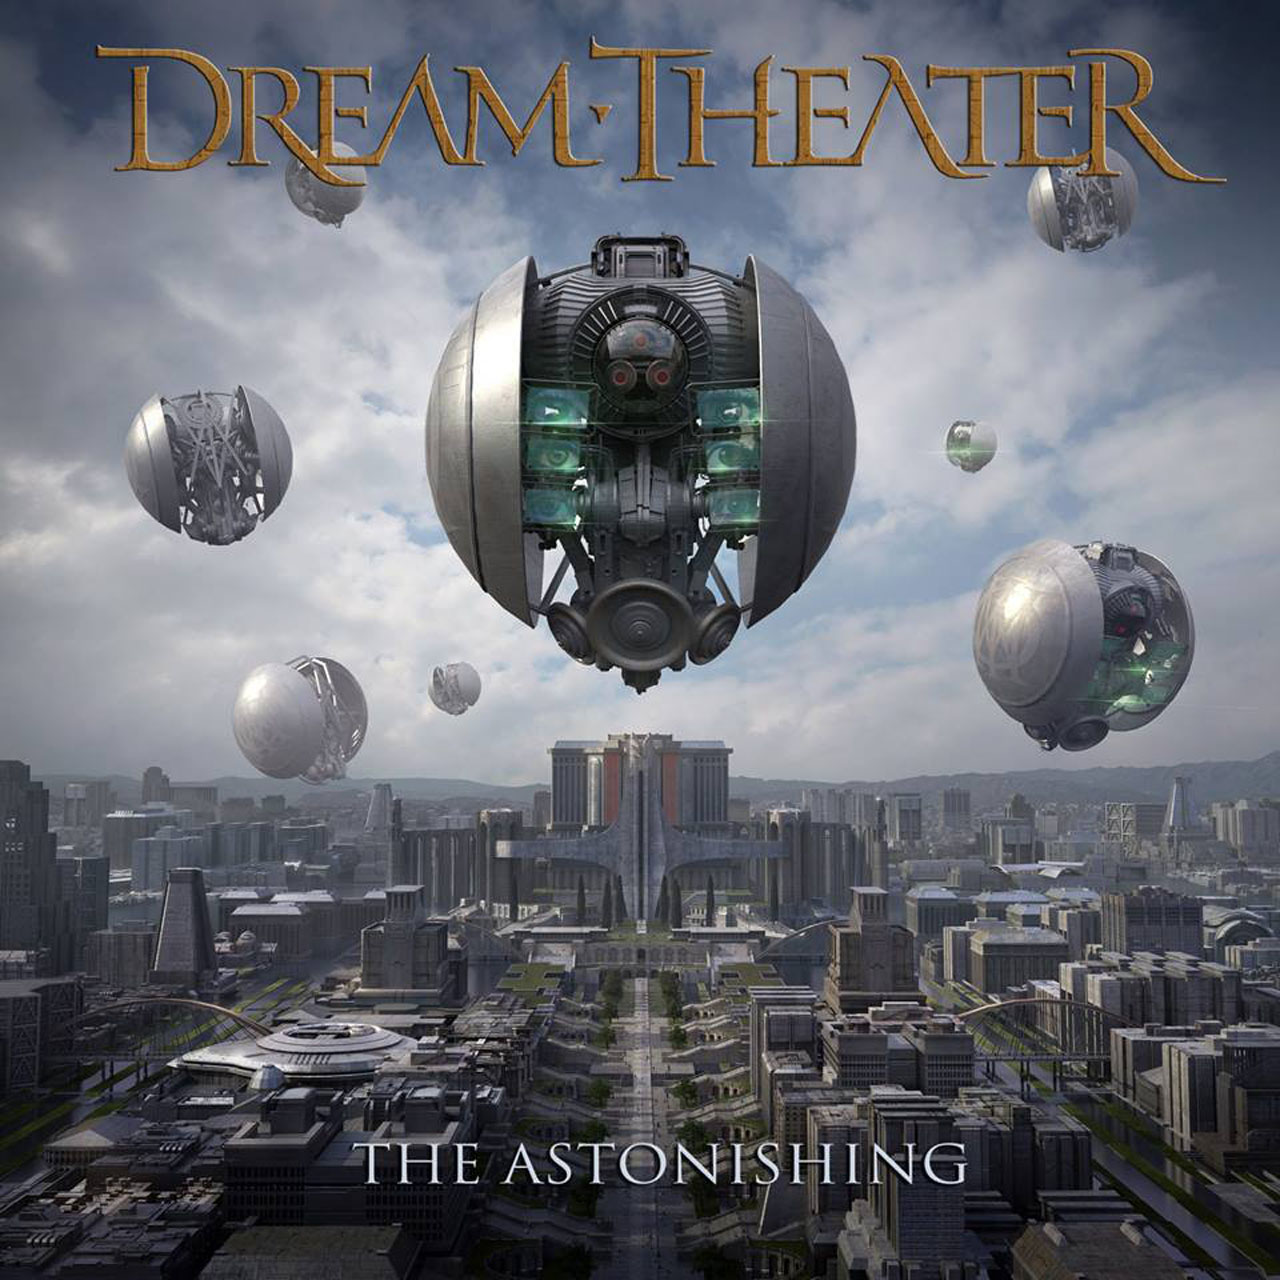 Dream Theater - The Astonishing - Album Cover